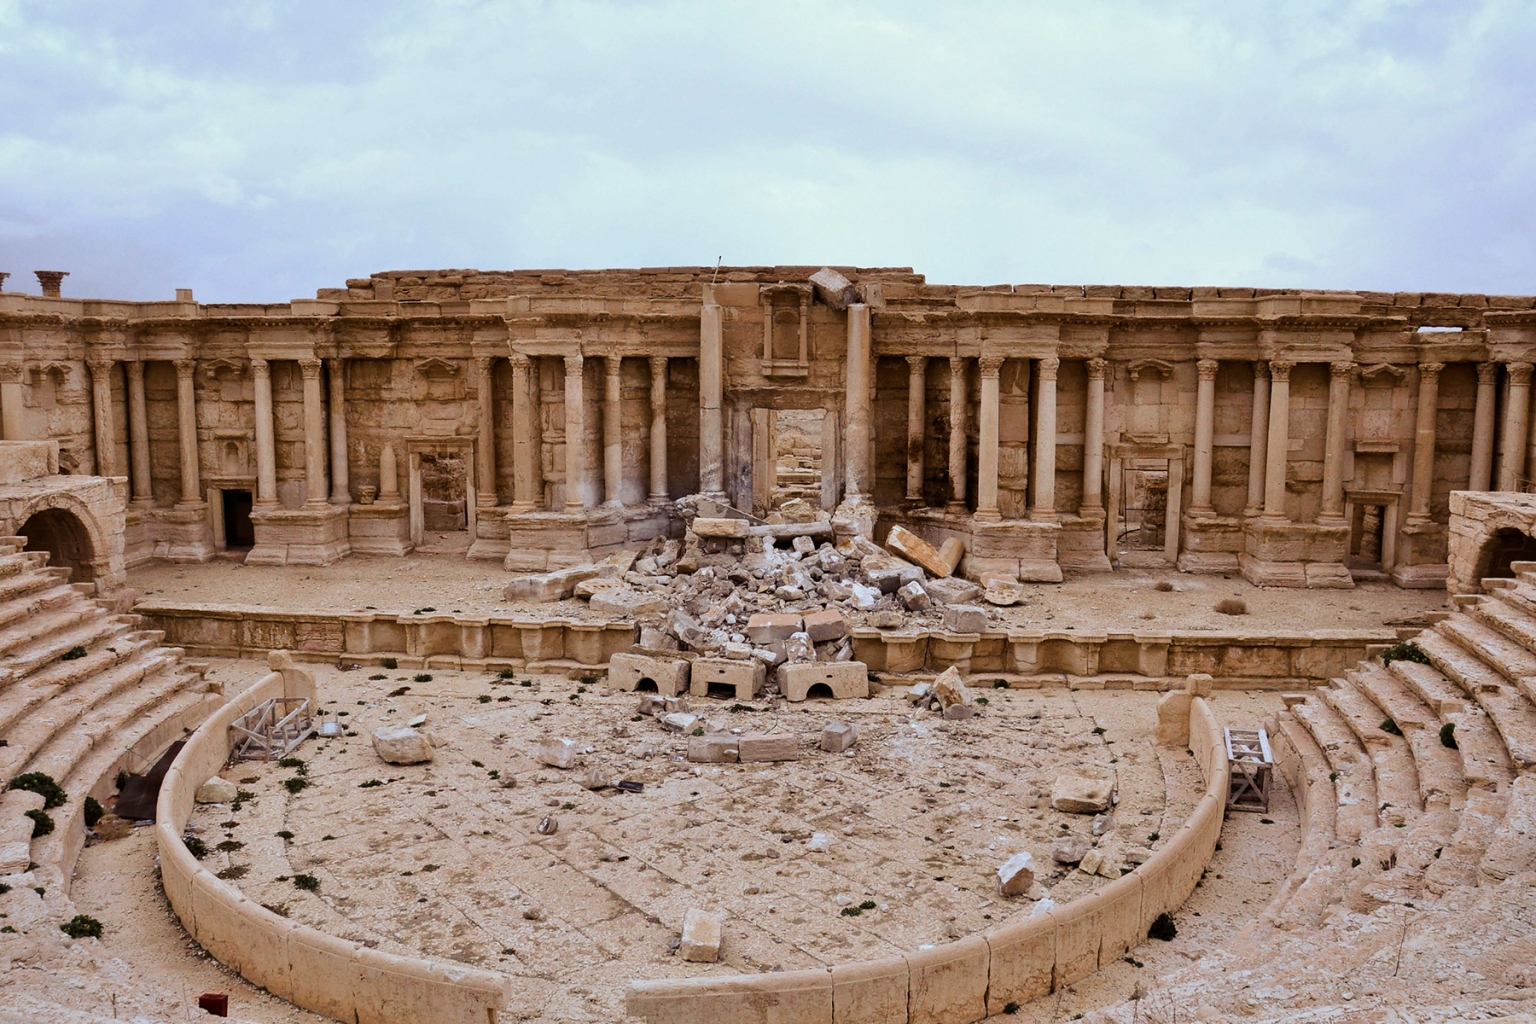 Damage in Palmyra after Syrian troops recaptured the ancient city from the Islamic State group on March 2, 2017. Miliants destroyed the facade of the Roman amphitheater, a 2nd-century Unesco World Heritage site. (Stringer/AFP/Getty Images)